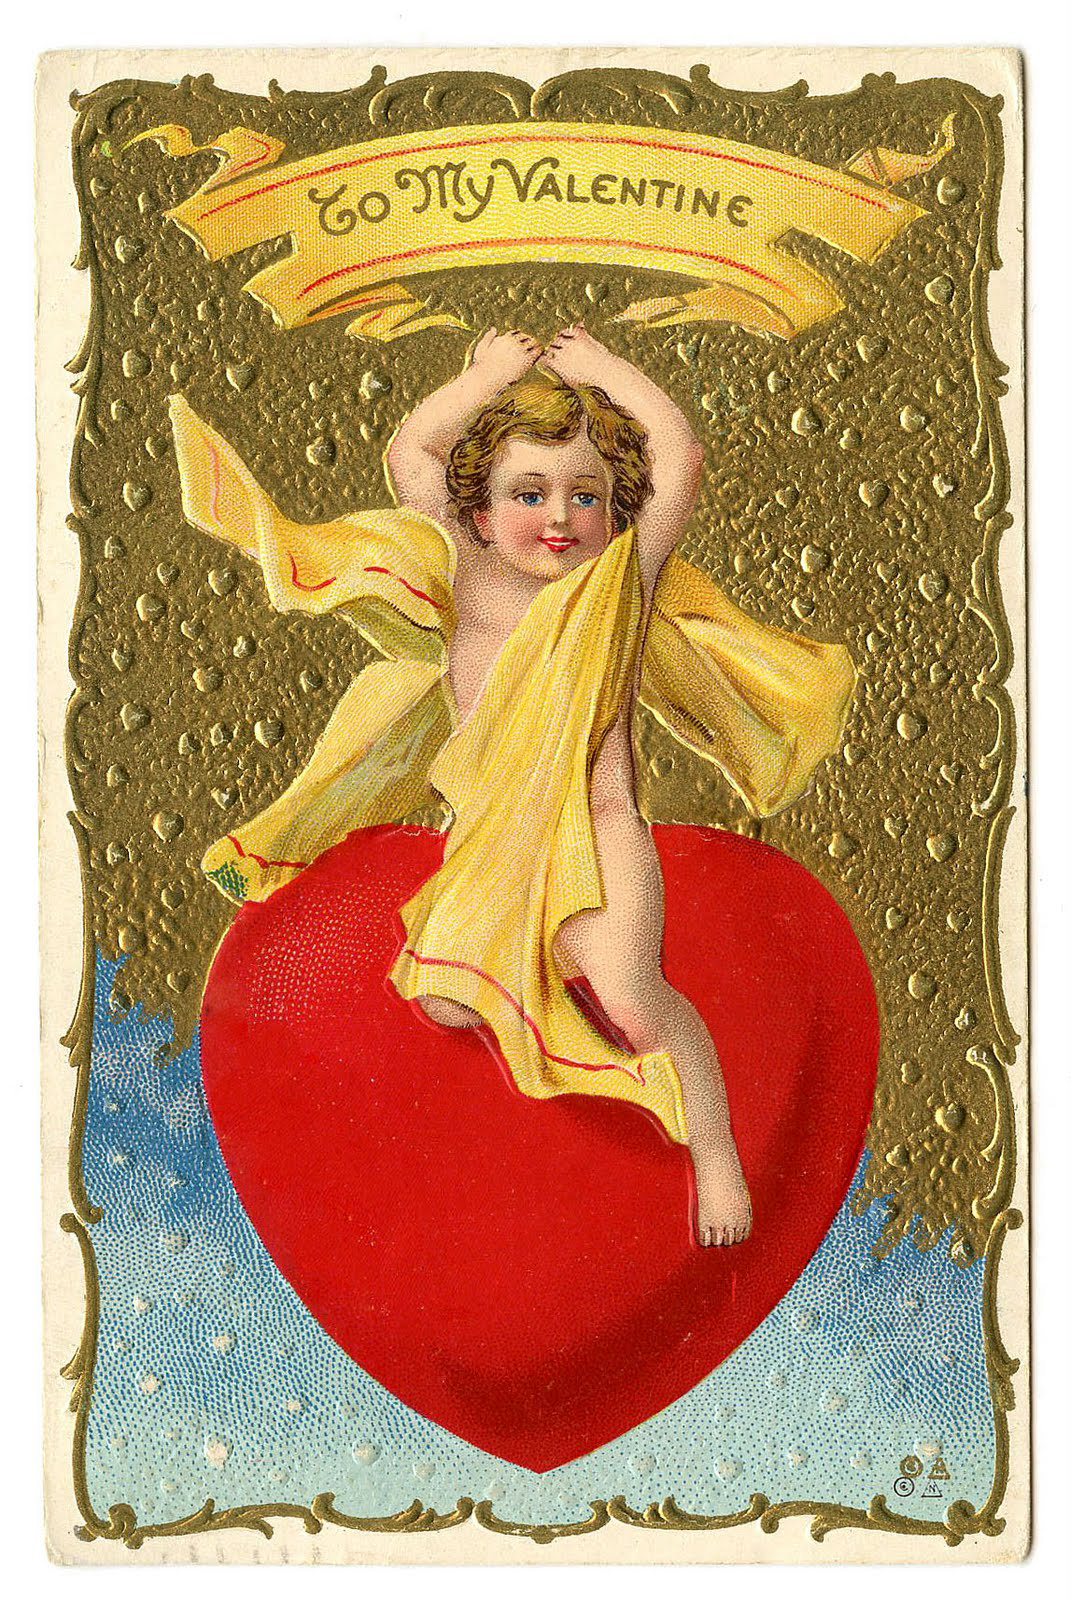 9 Cherubs and Hearts Images - Updated! - The Graphics Fairy